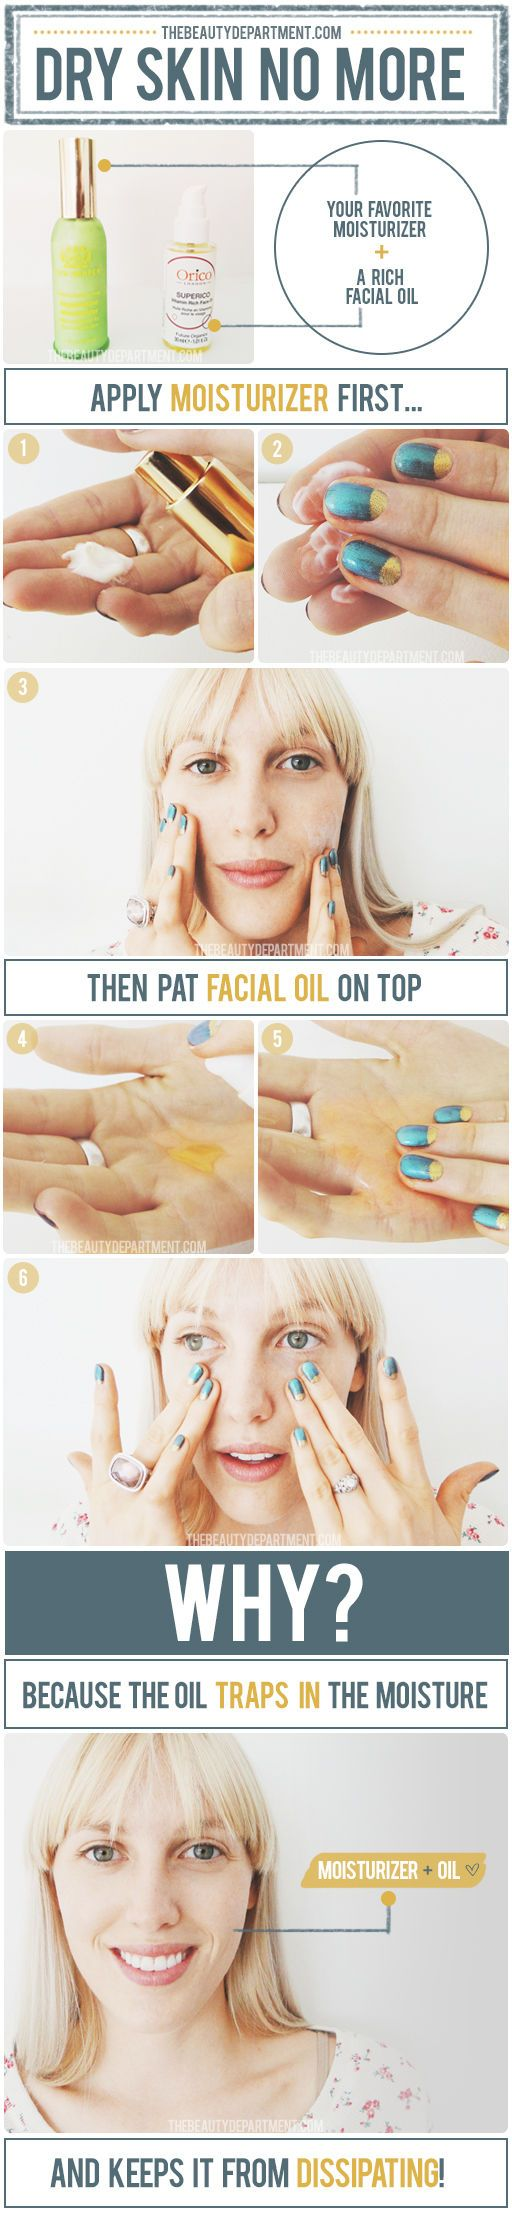 Why a facial oil might actually clear up your skin. I always use oil in the winter! My skin has never looked better.